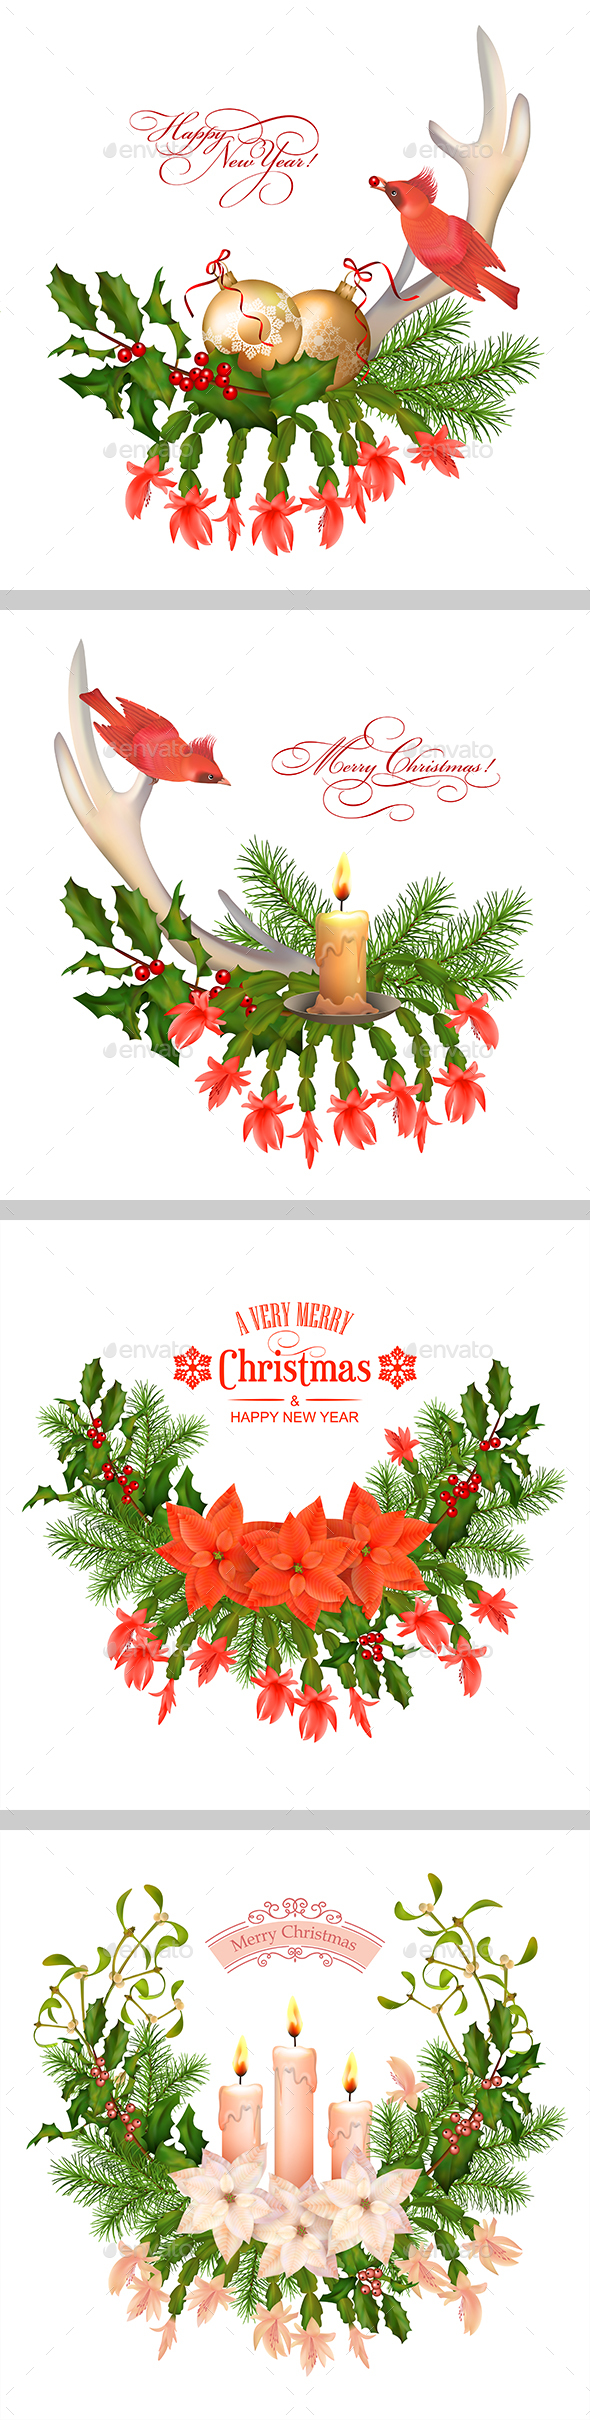 Christmas Decorations Set - Christmas Seasons/Holidays